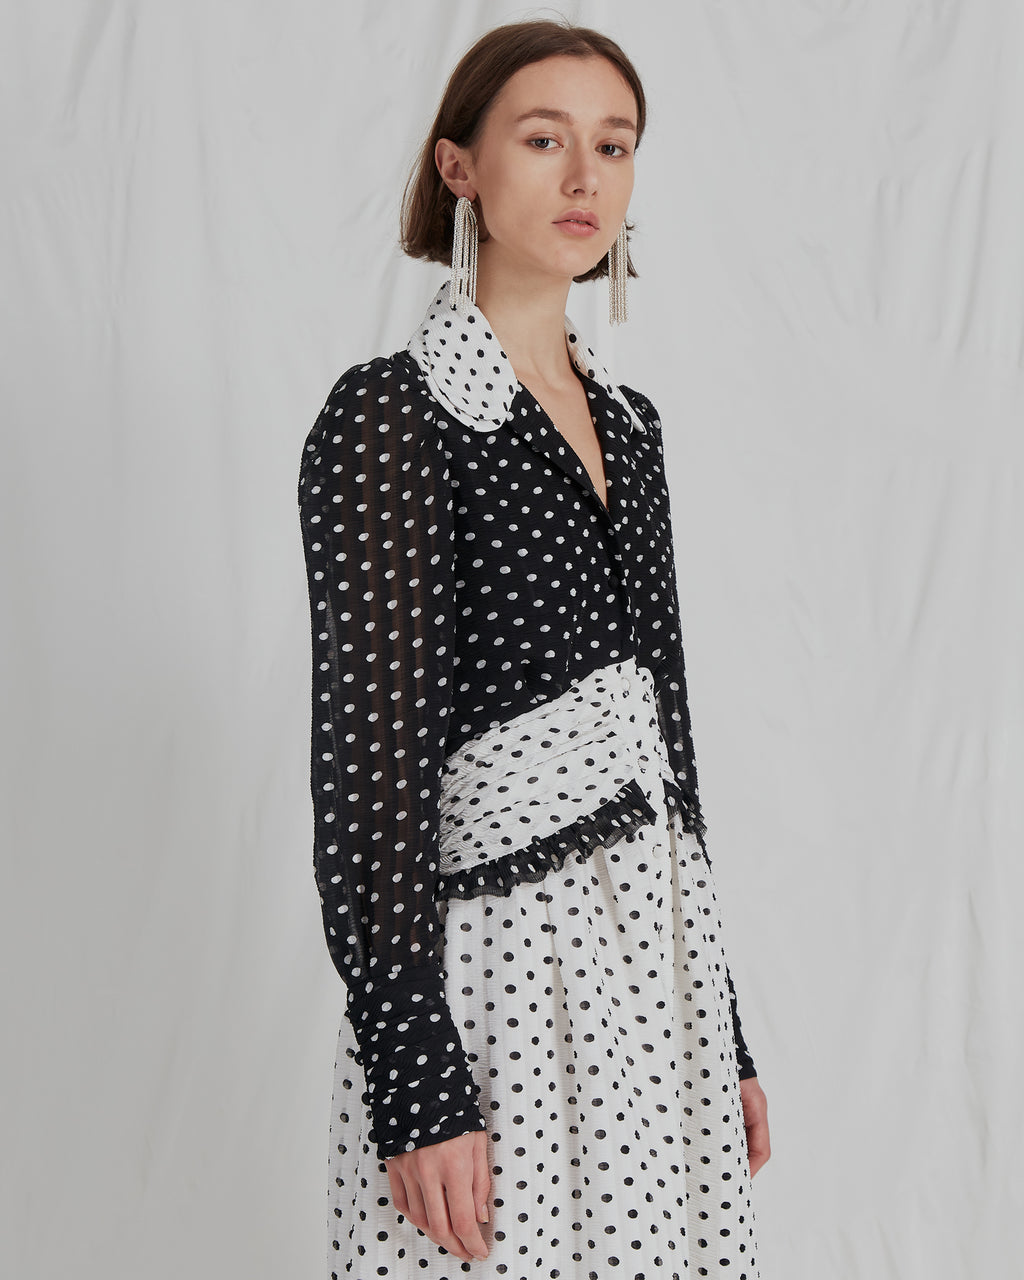 Yvette Dress Seersucker Polka Dot Black and White